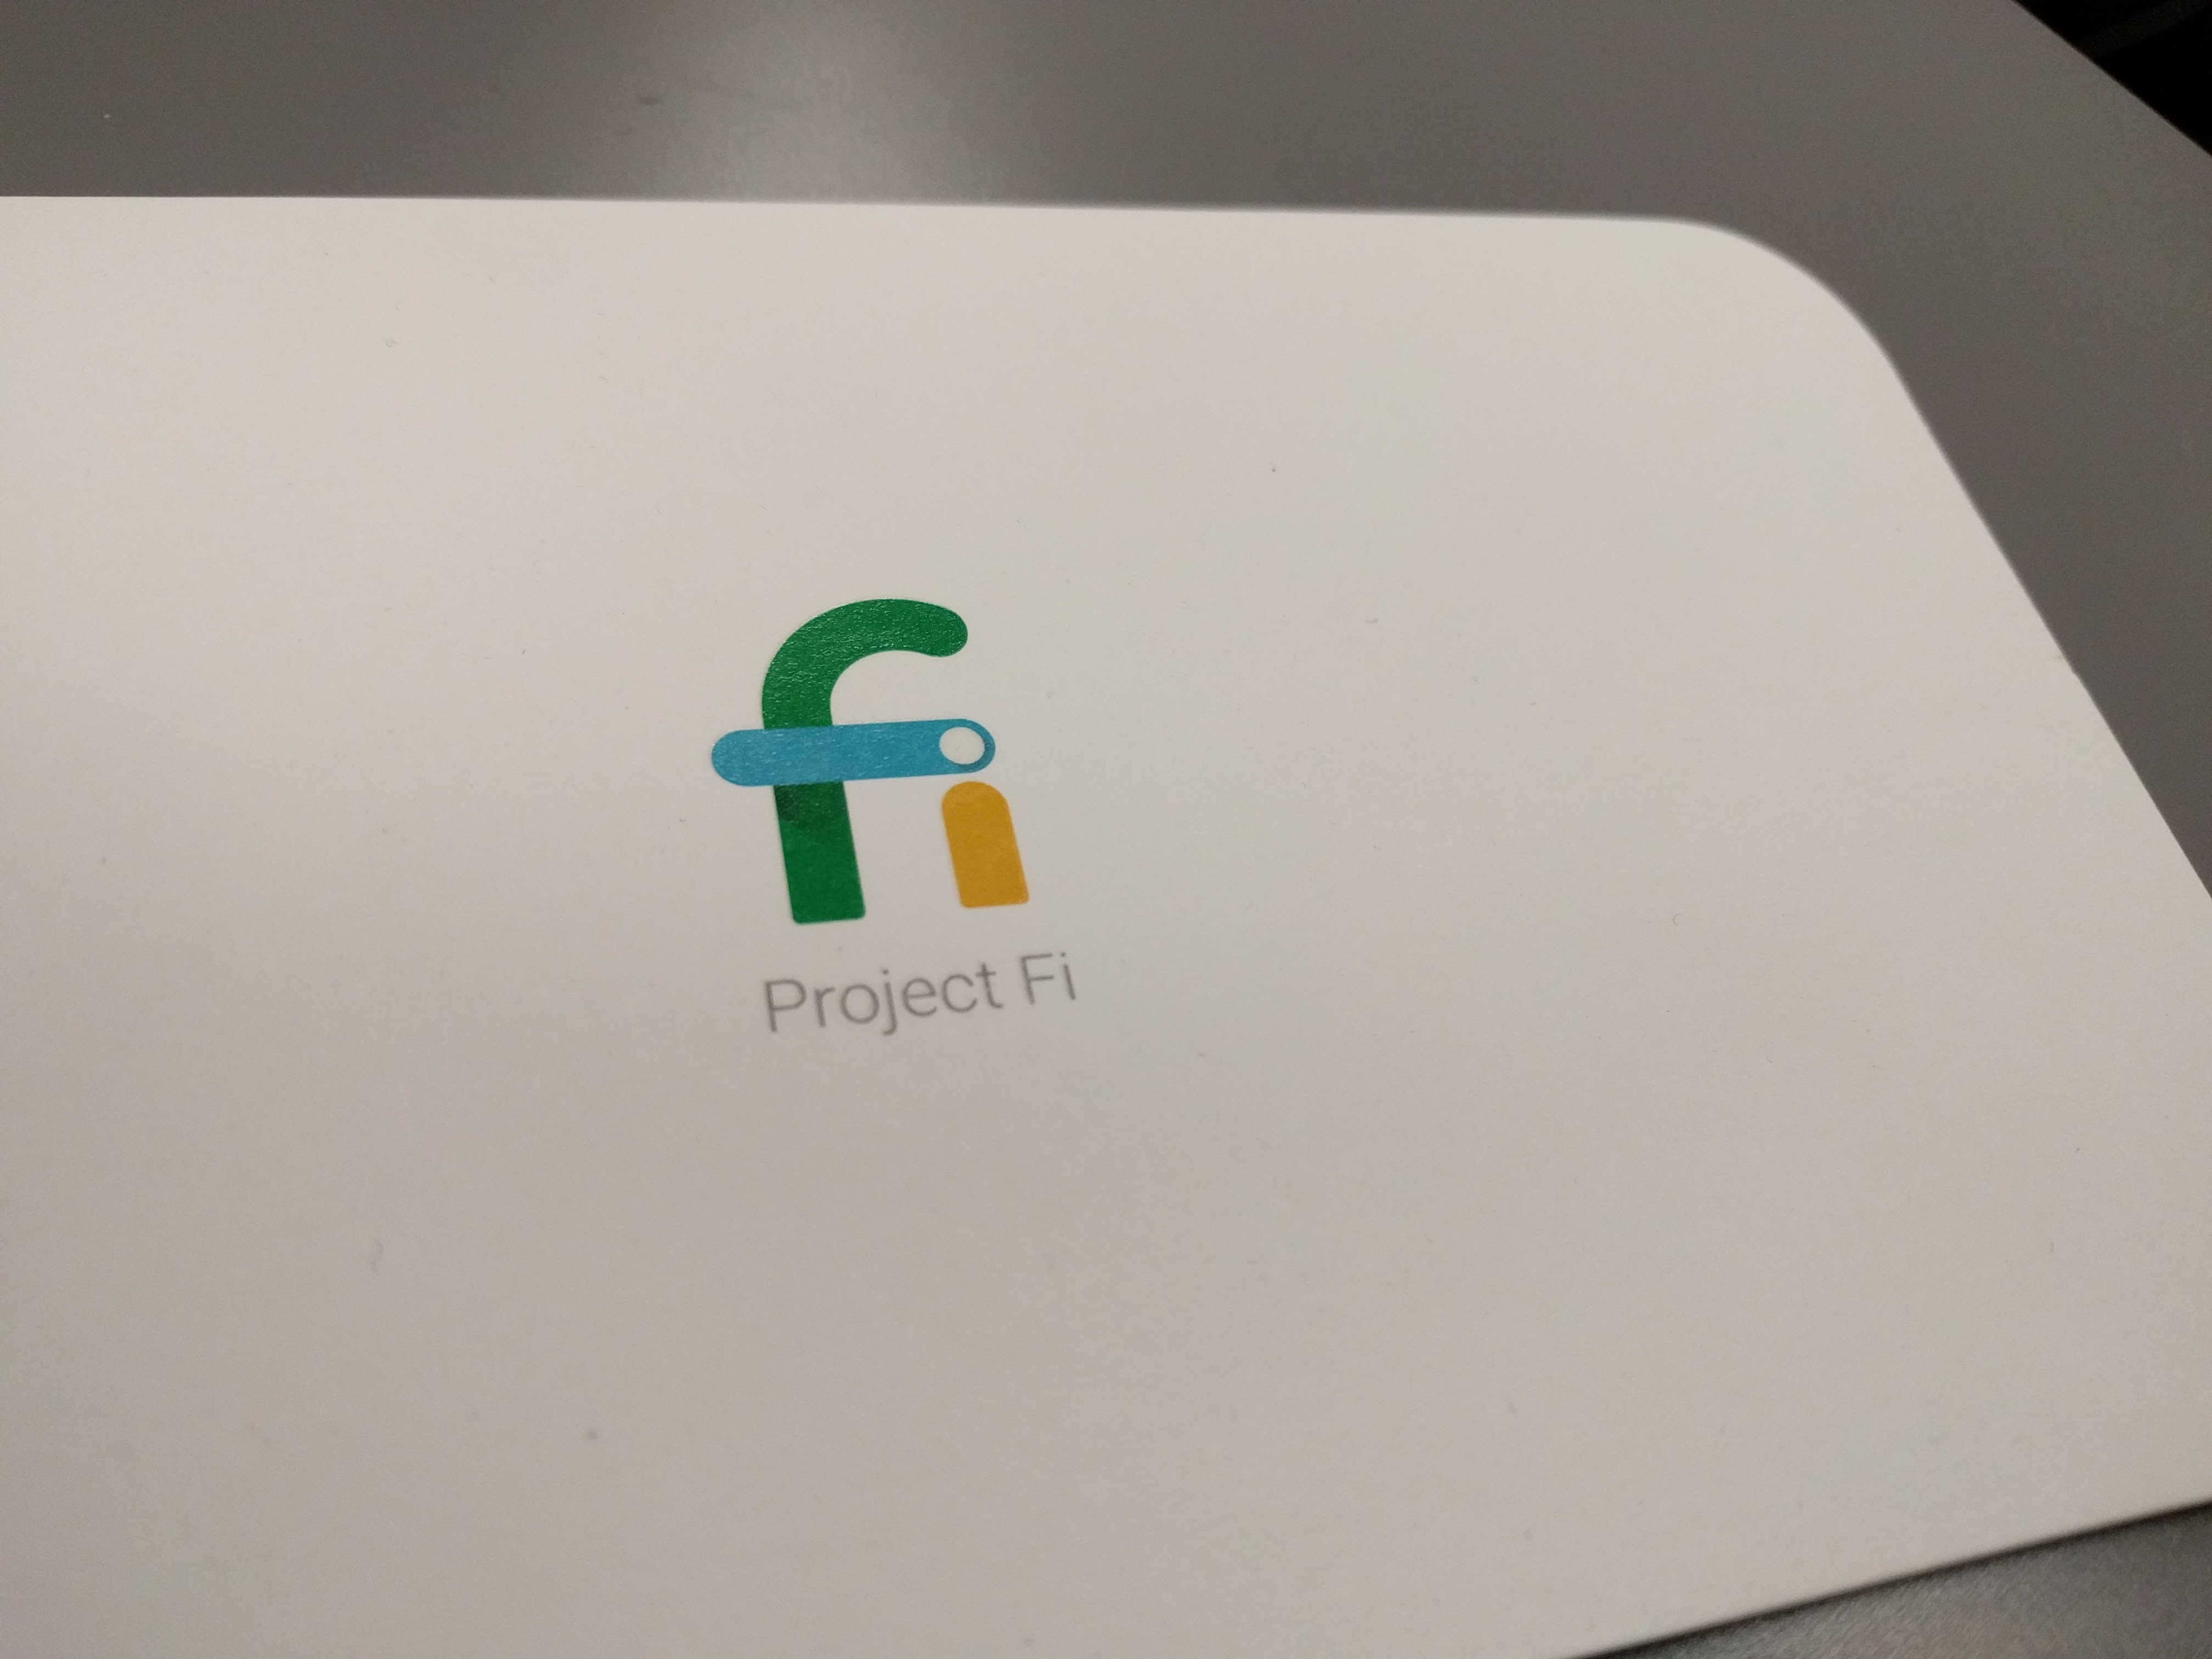 I started using the Project Fi SIM card after our Nexus 5X review unit came in.